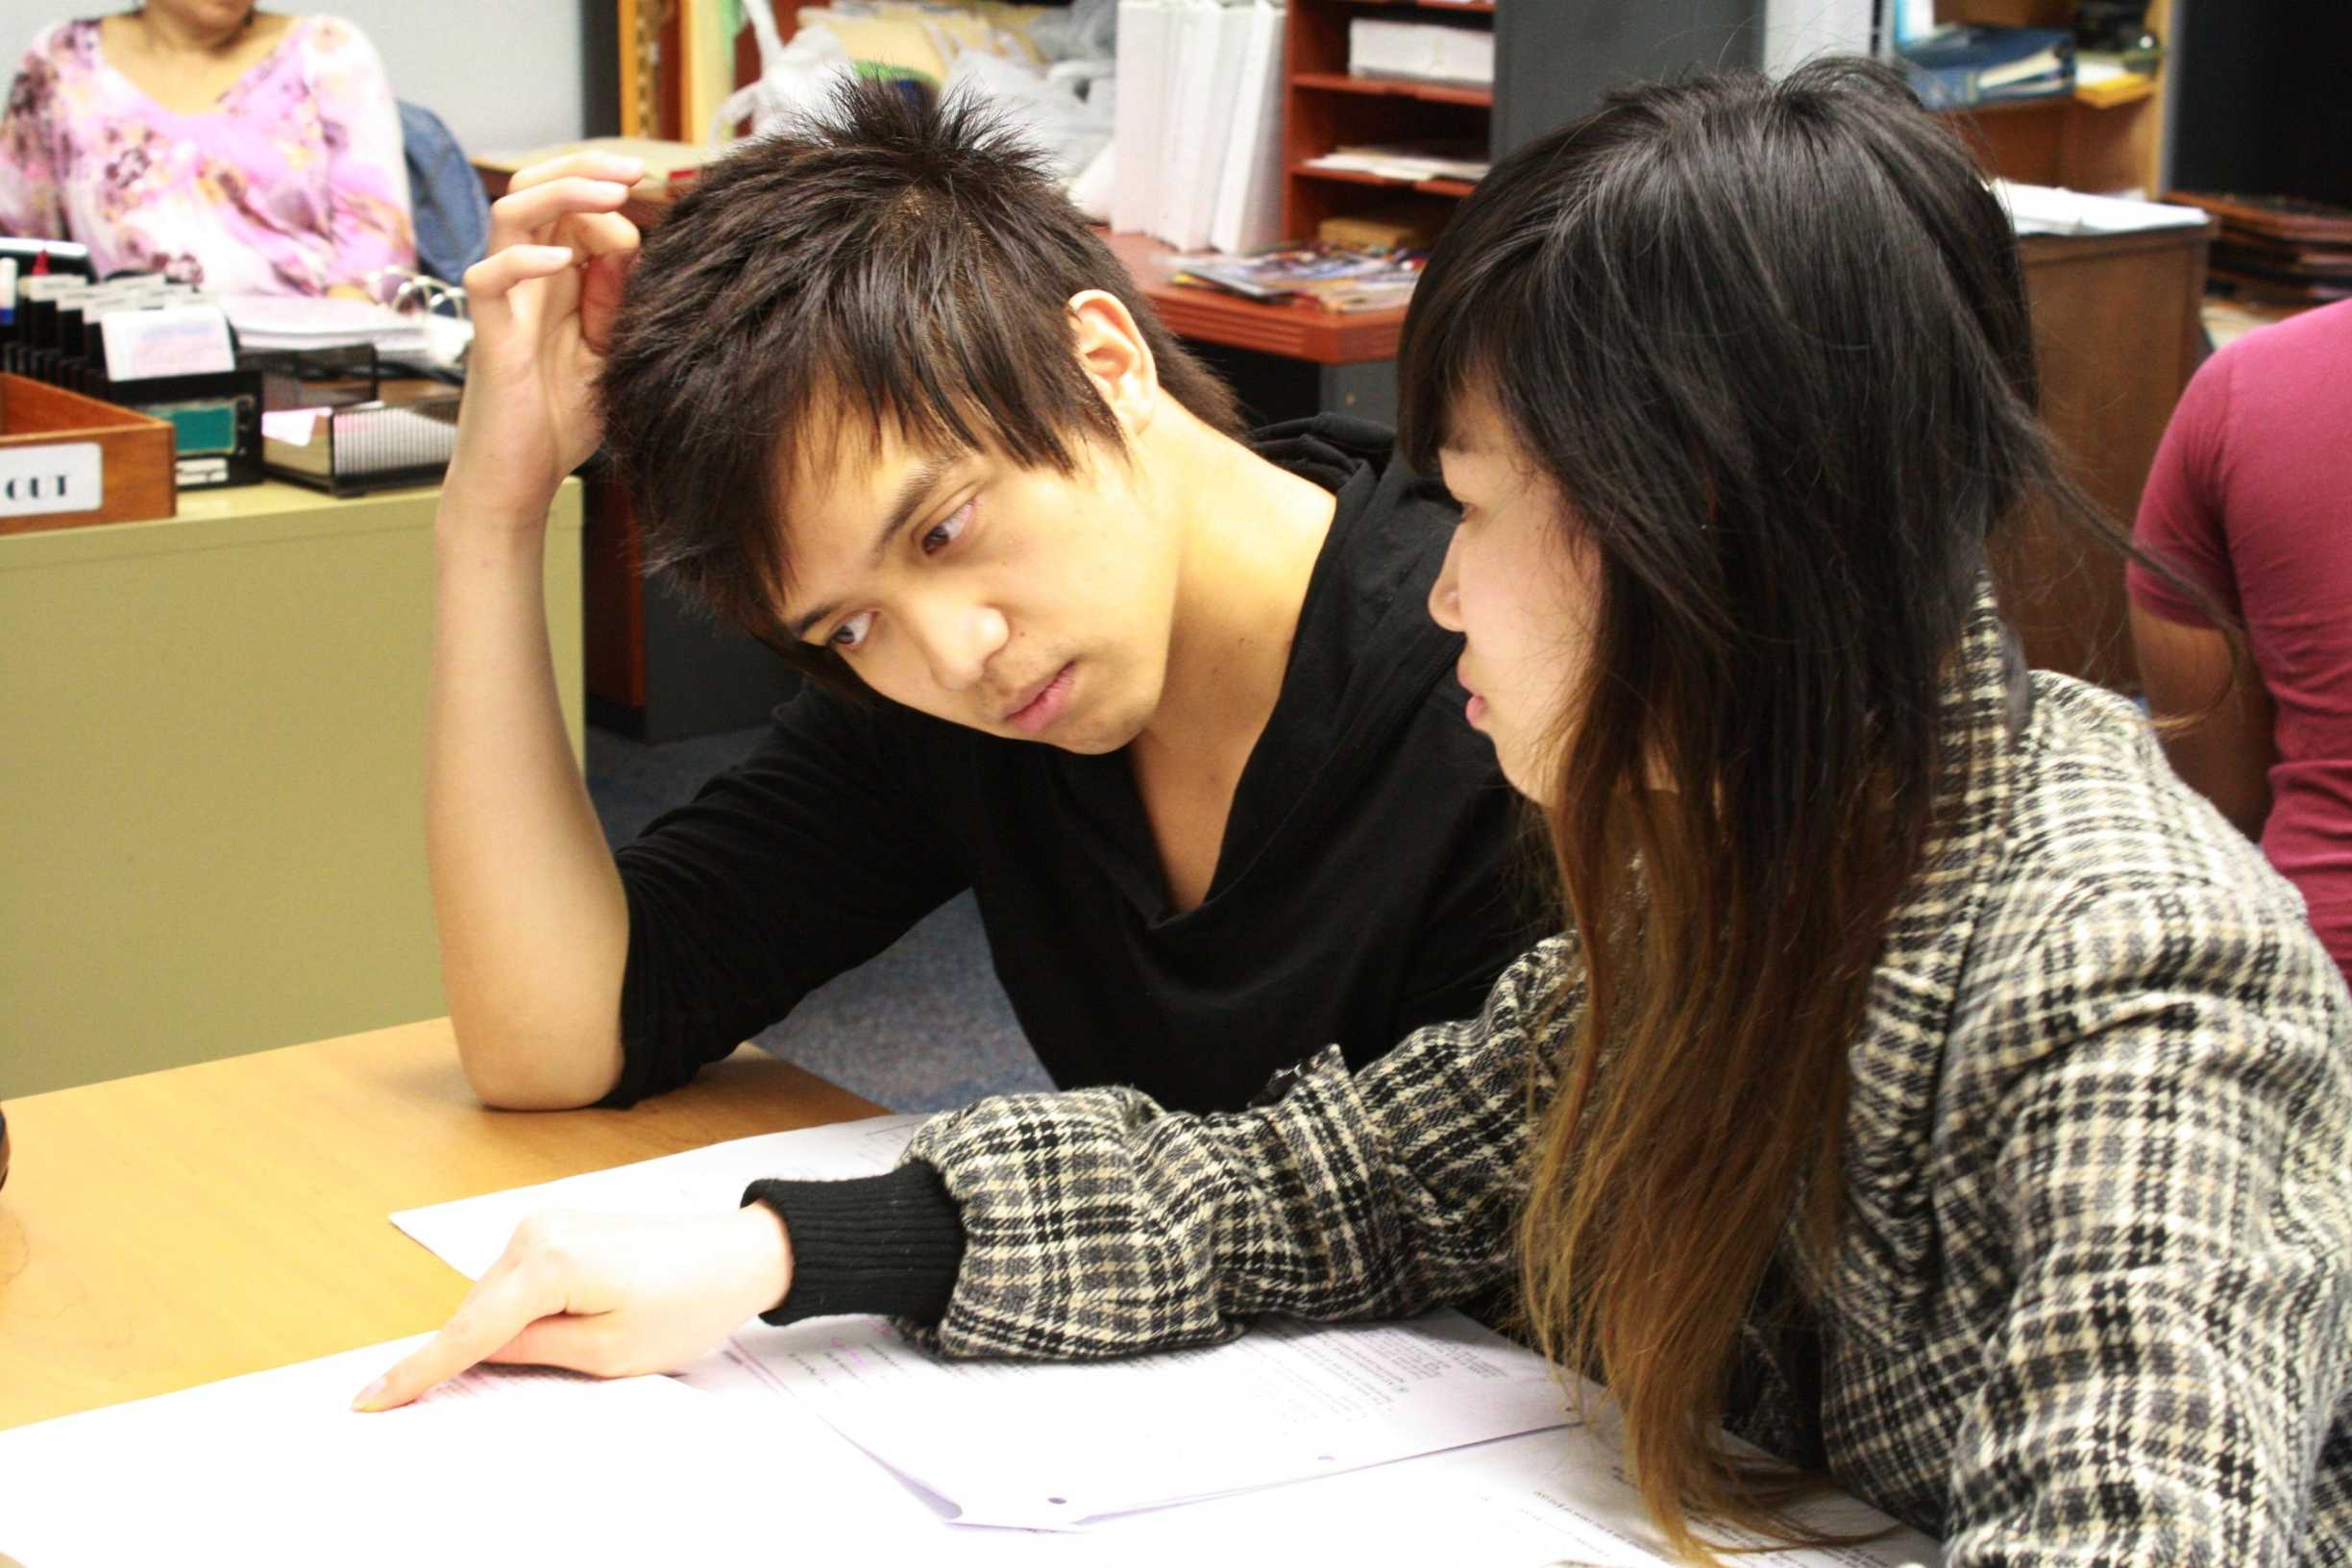 The [Academic Resource Center] offers academic counseling to help students adapt to the university system and demands, tutorial services, paper review services and disability services.